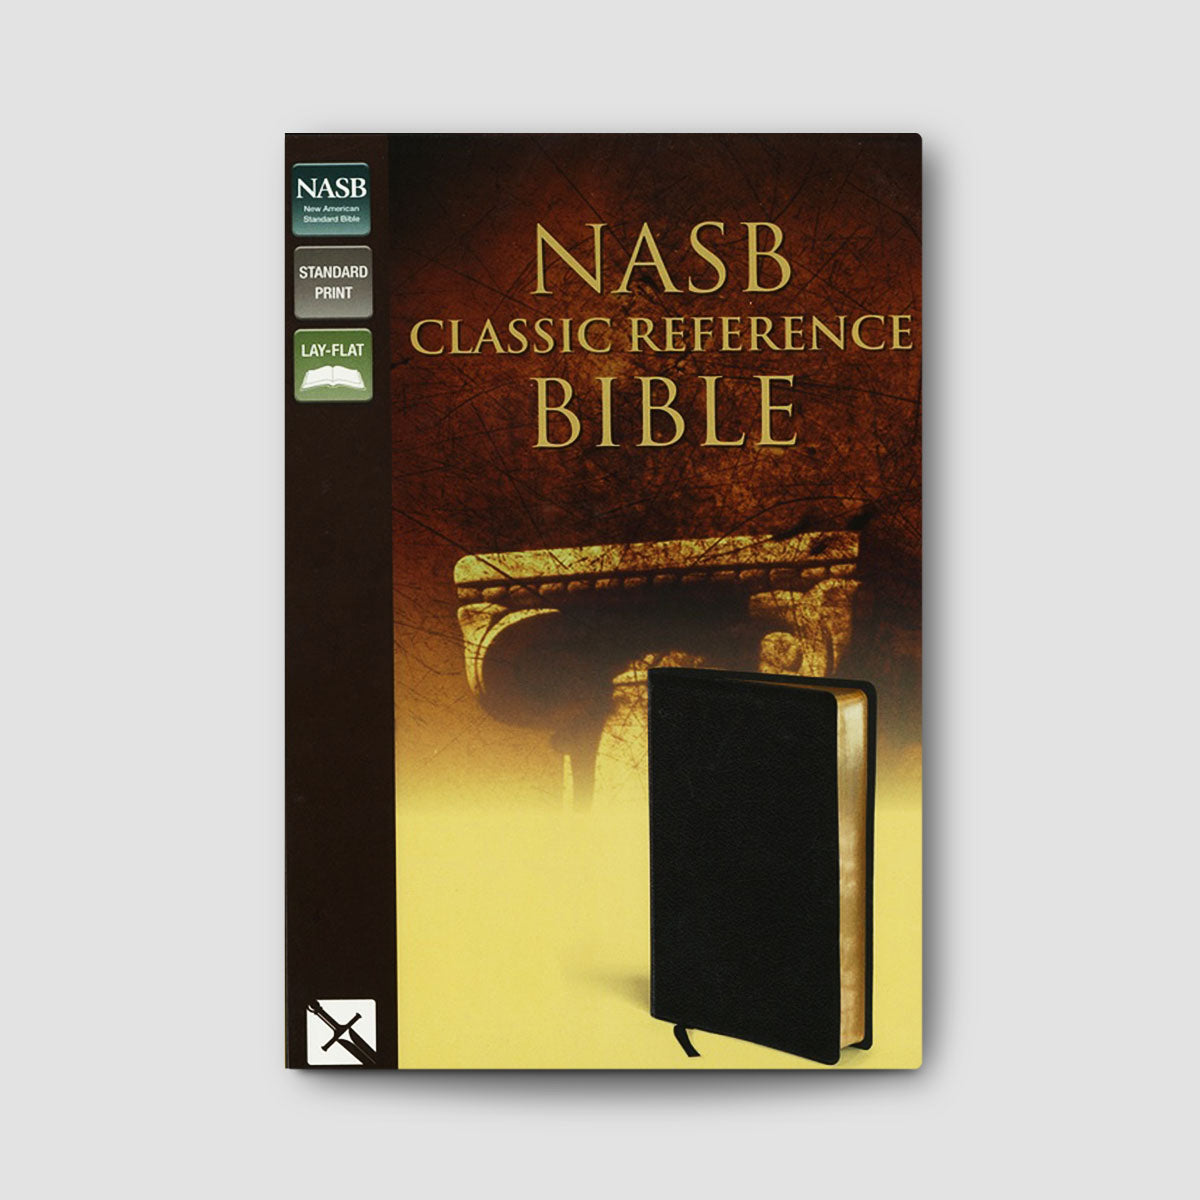 NASB Classic Reference Bible Black